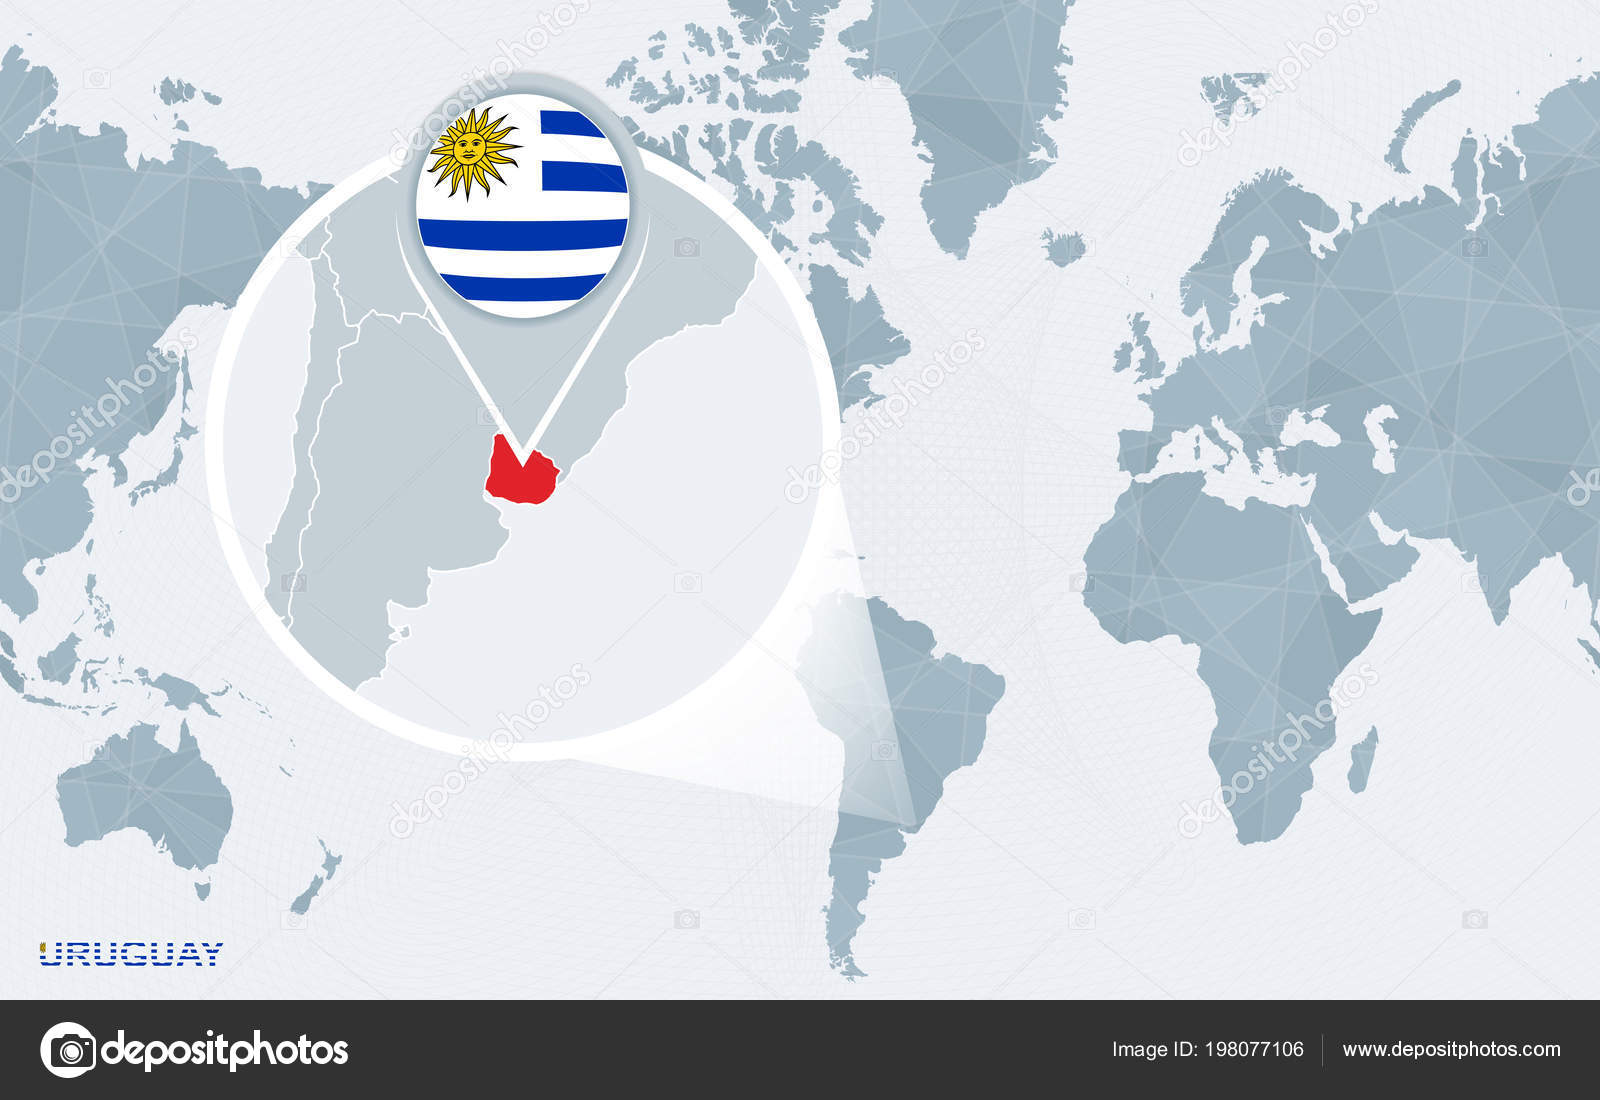 World map centered america magnified uruguay blue flag map uruguay world map centered america magnified uruguay blue flag map uruguay stock vector gumiabroncs Images